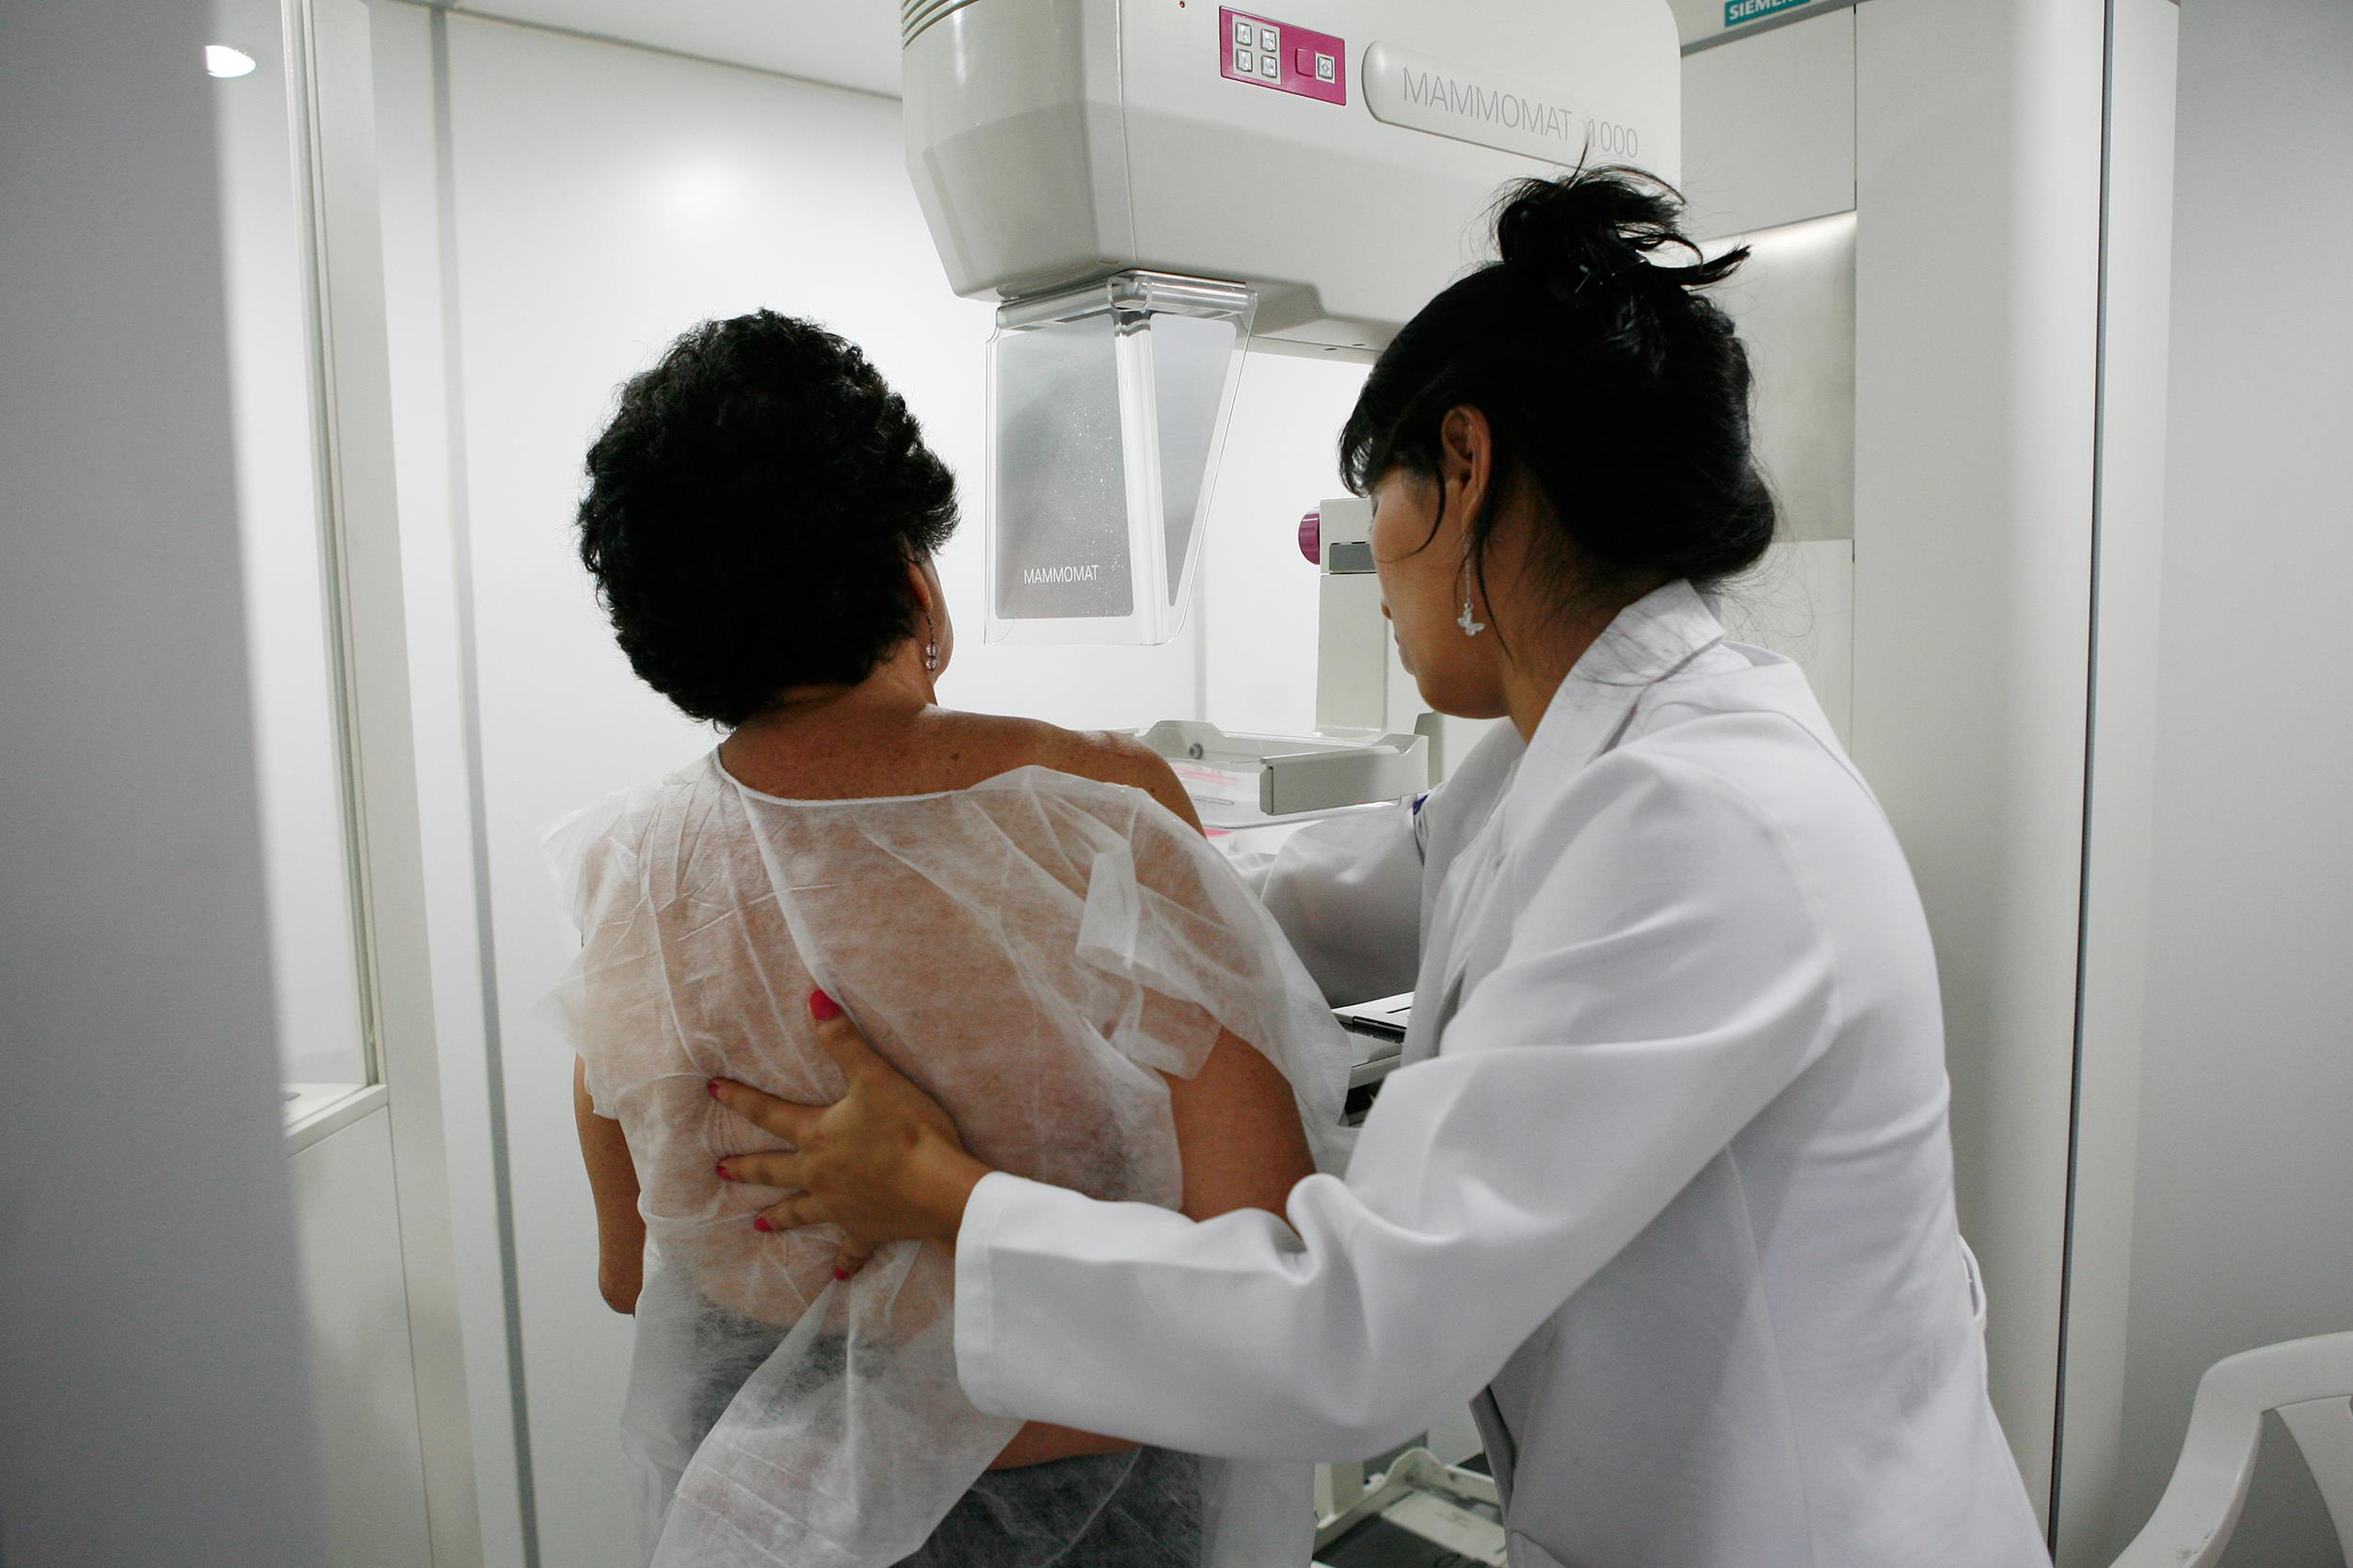 Image: A woman undergoes a mammogram